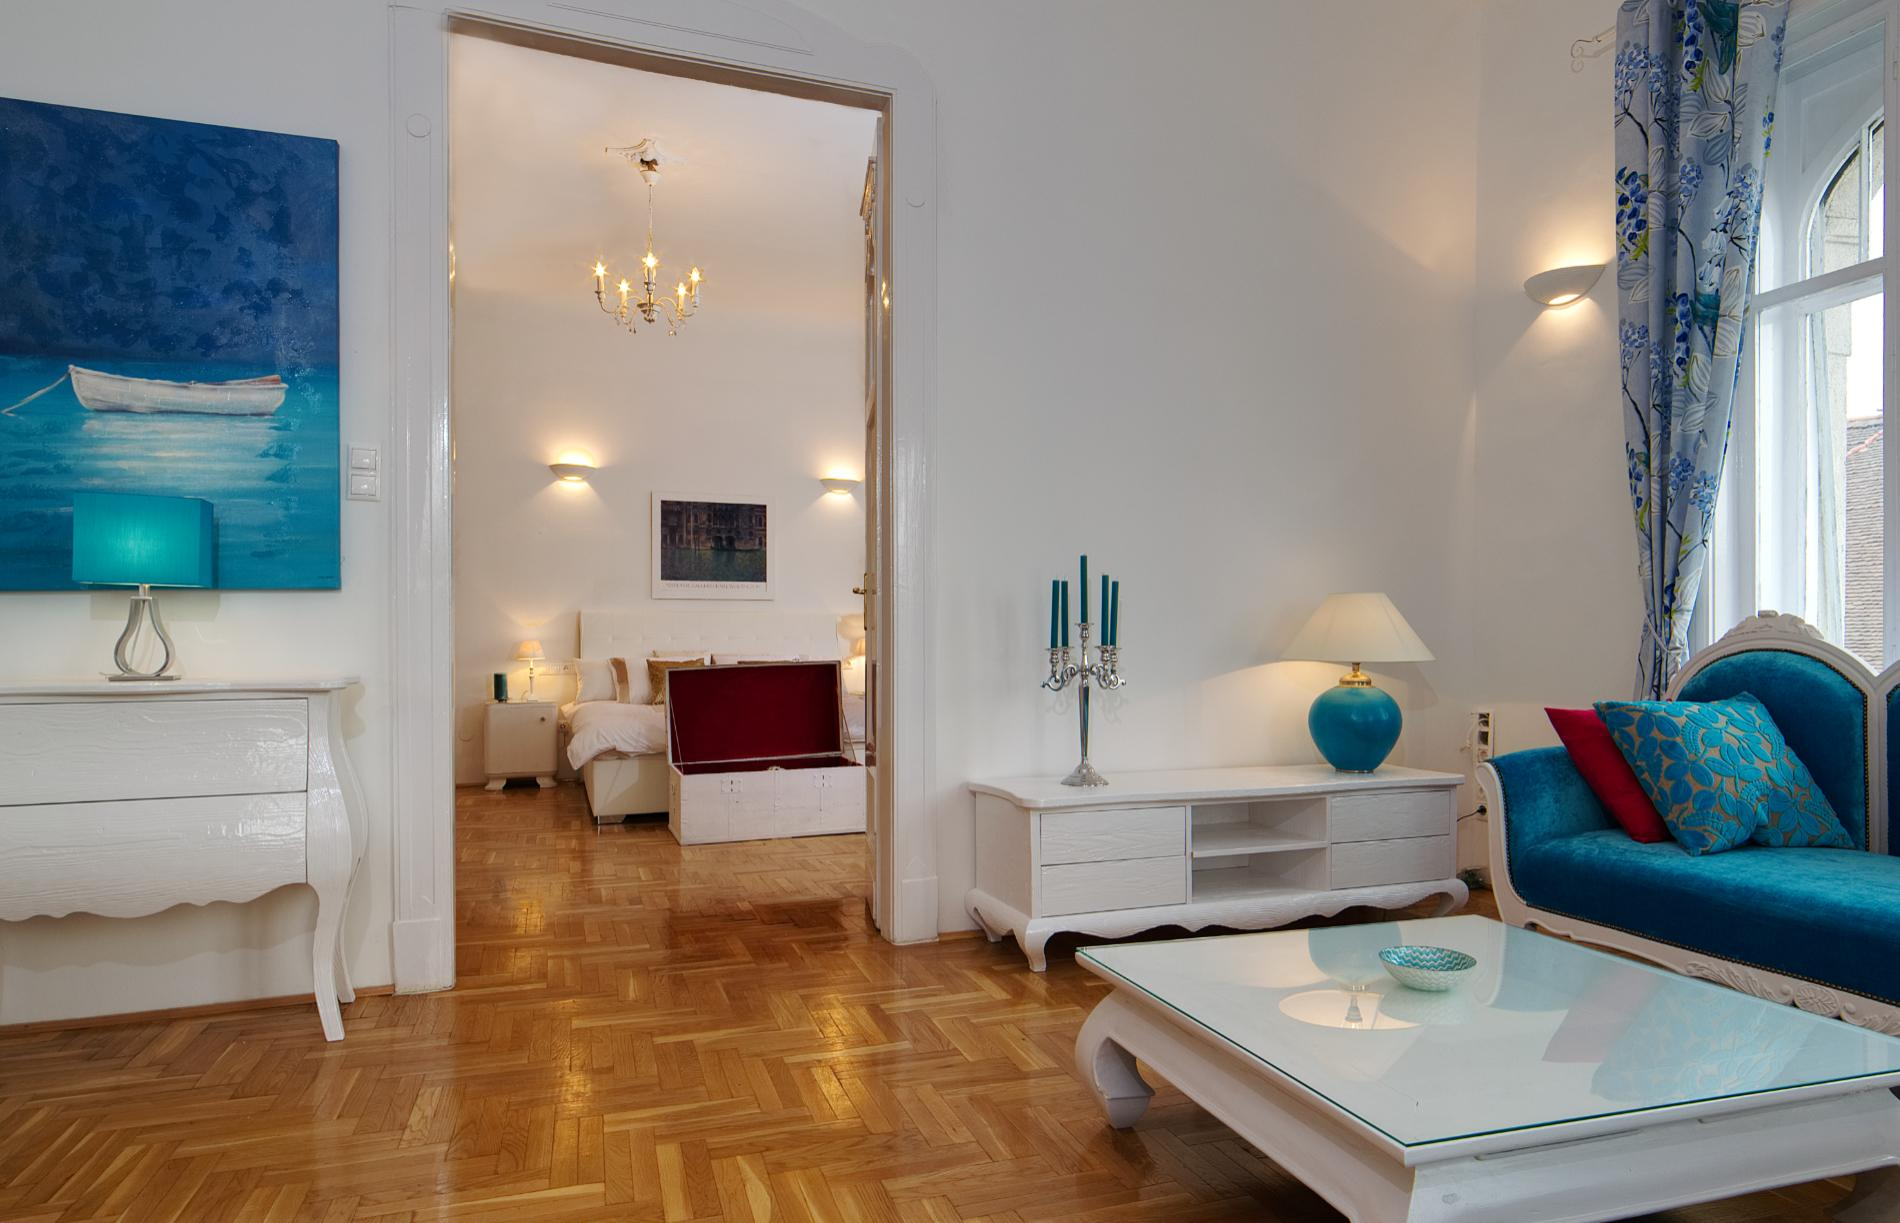 Kiraly - 3 bedroom flat in Budapest